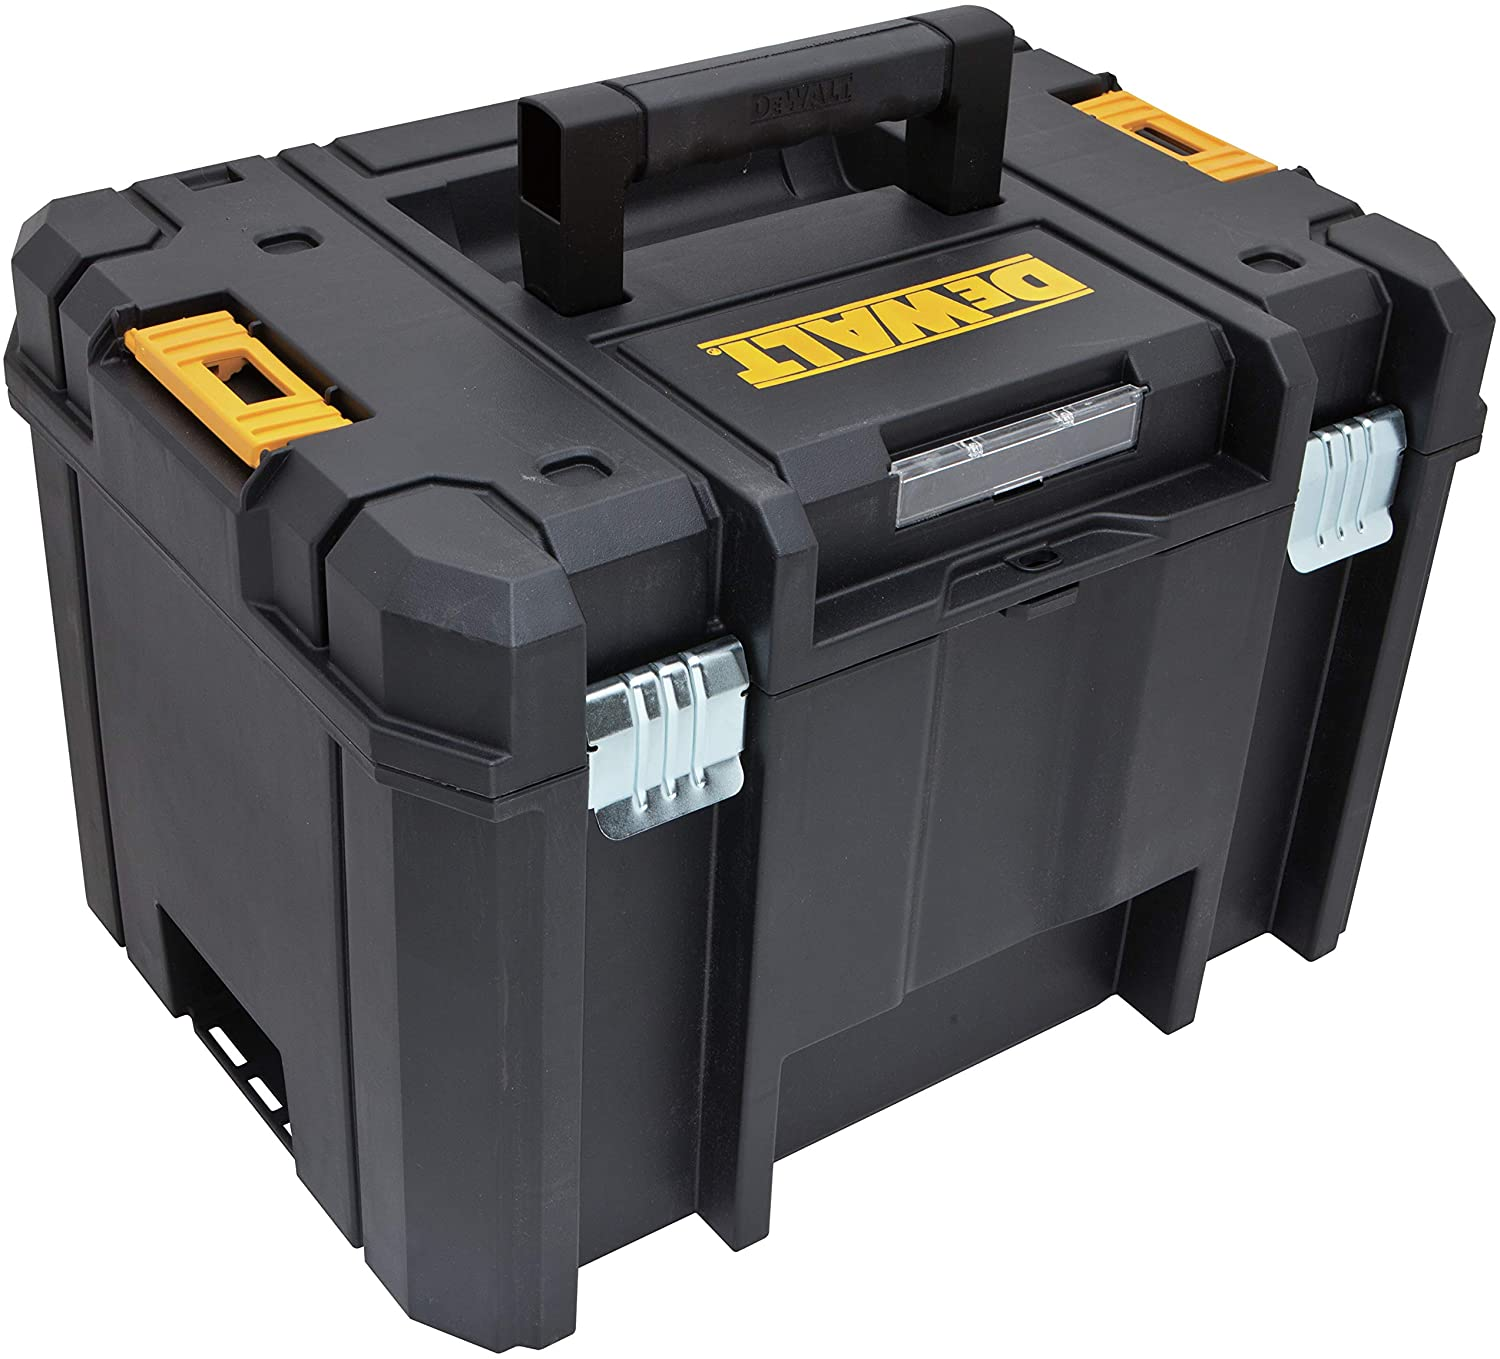 Review of DEWALT (DWST17806) Tstak Tool Box, Deep